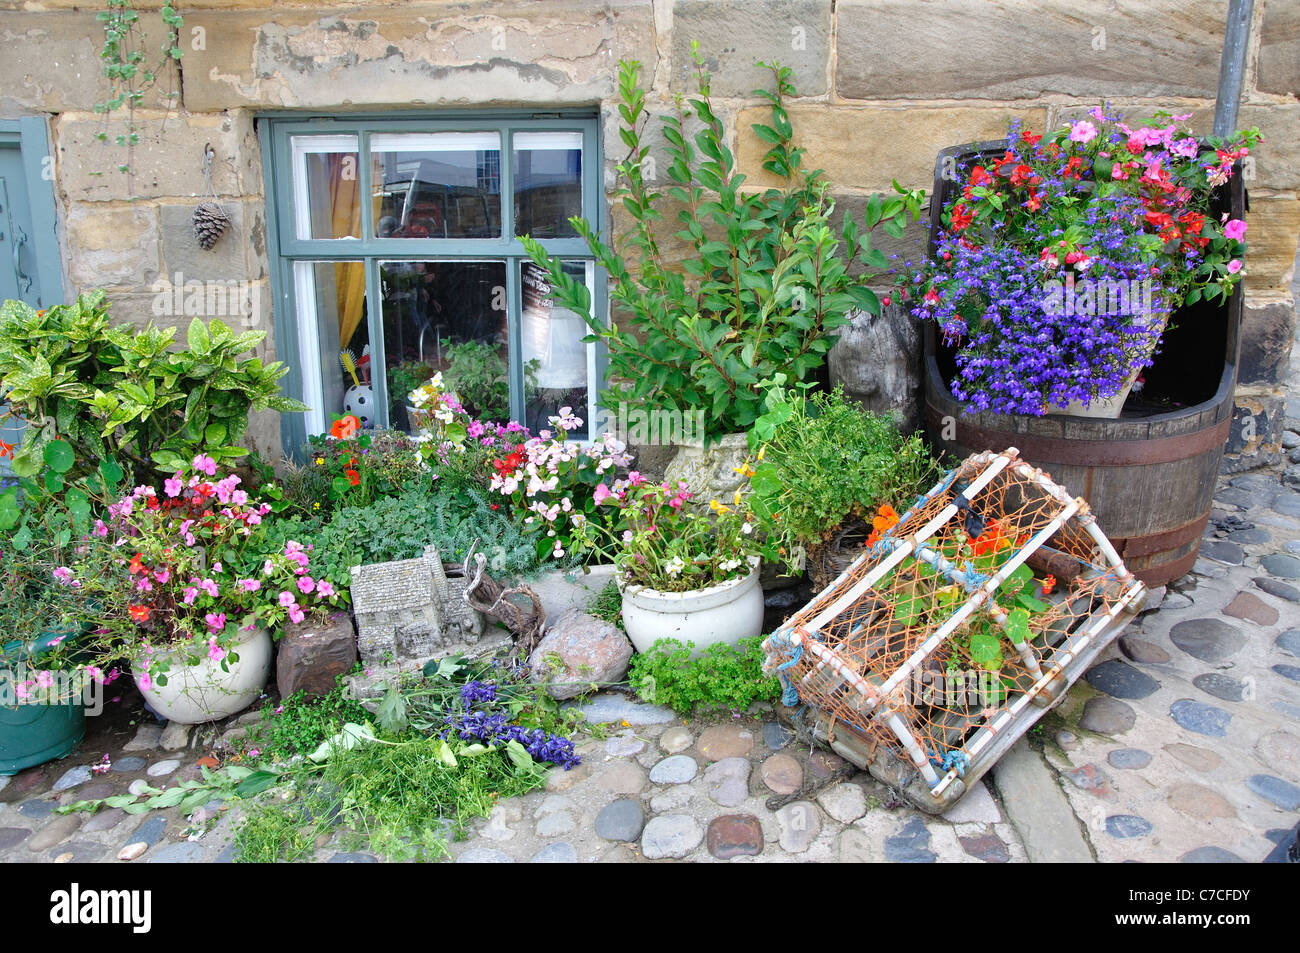 flowers and potted plants outside a cottage, Robin Hood's Bay, North Yorkshire, England, UK - Stock Image